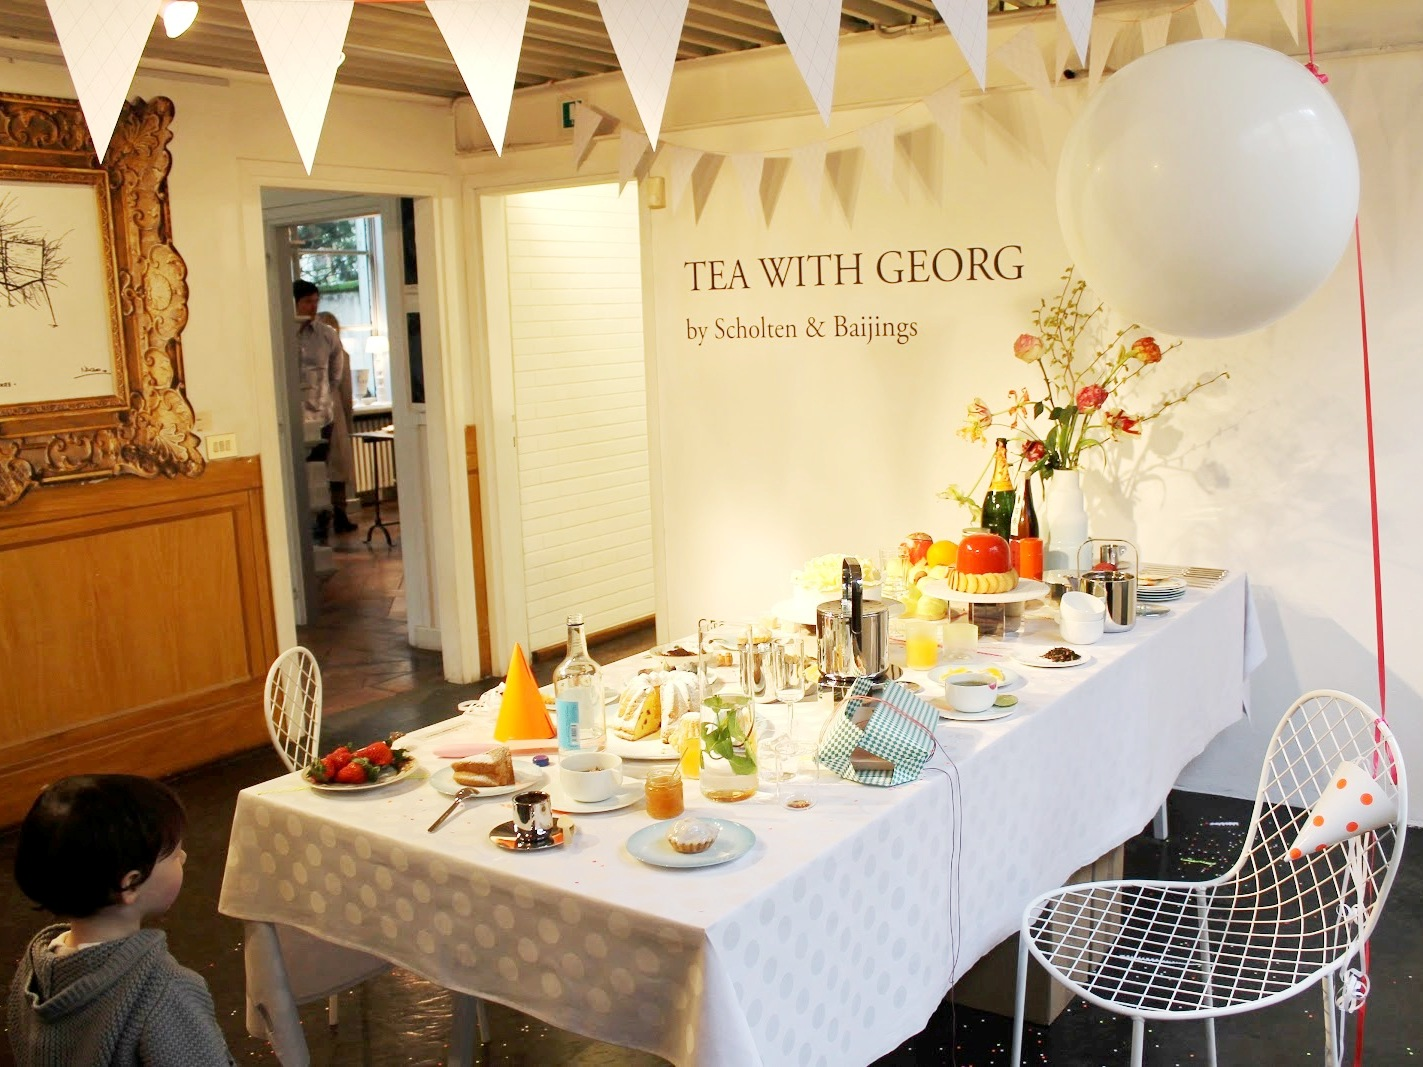 tea with georg (2)